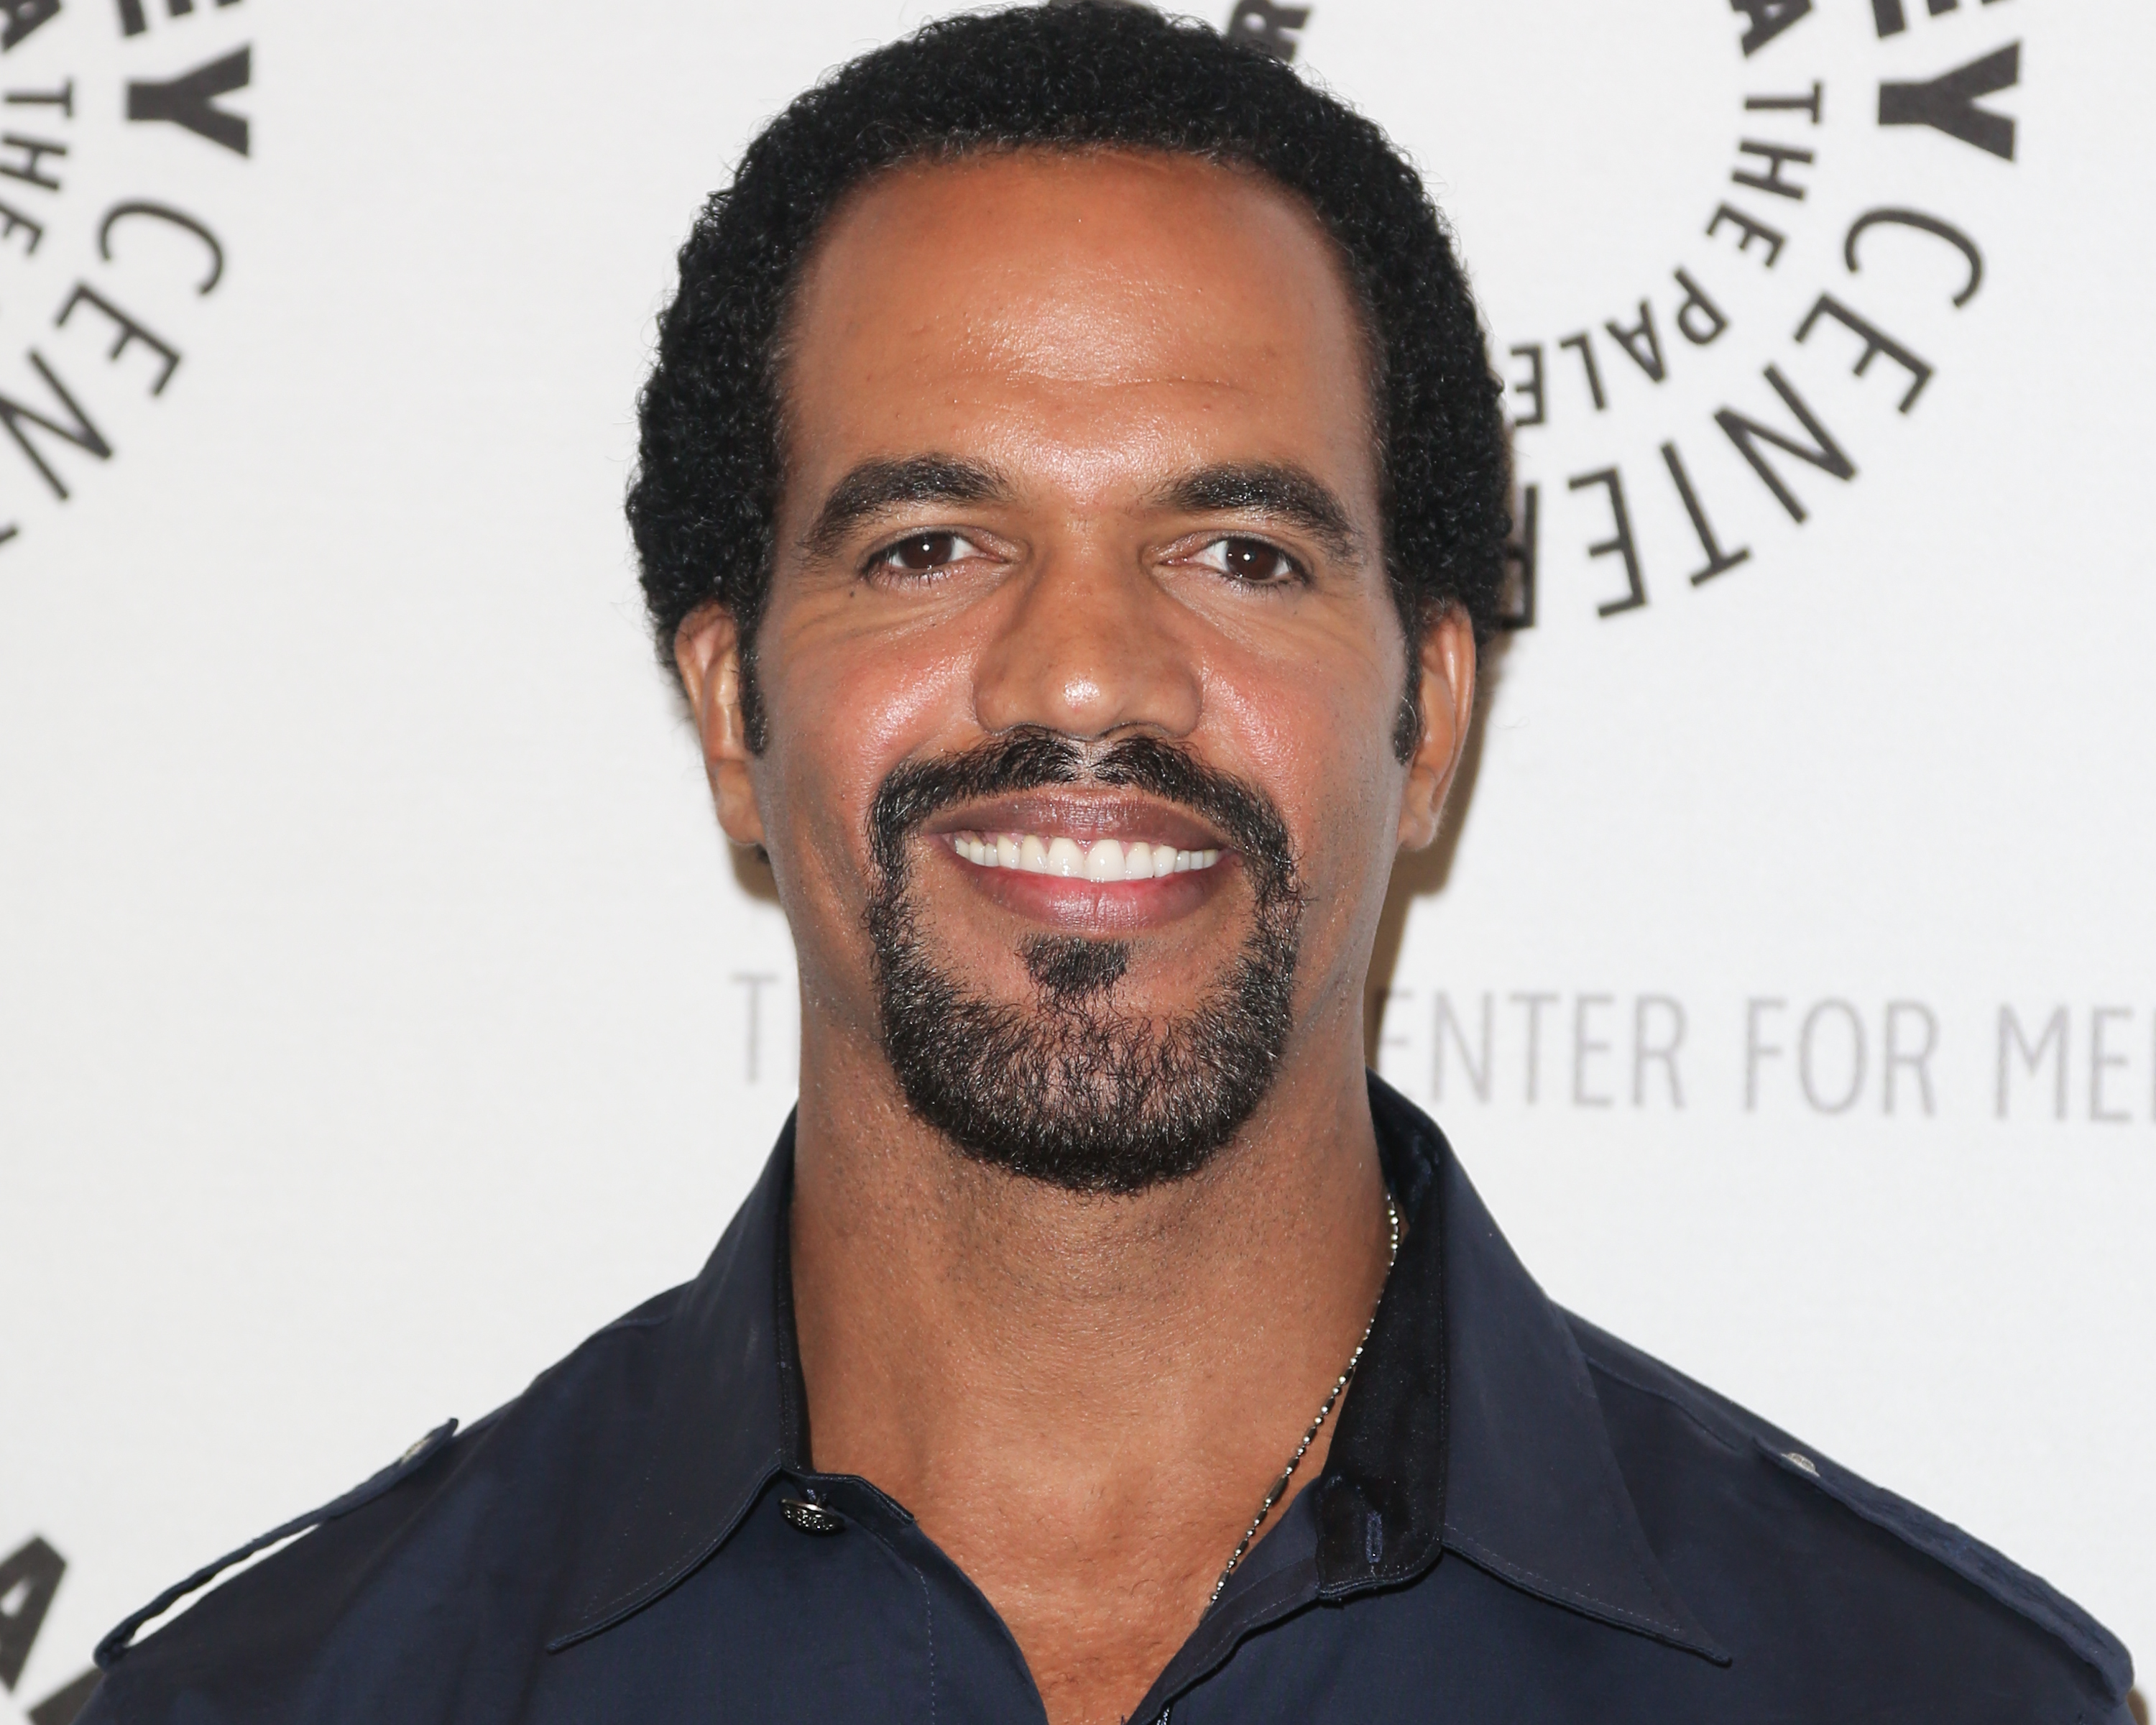 Kristoff St John's death caused by accidental alcohol overdose and heart disease